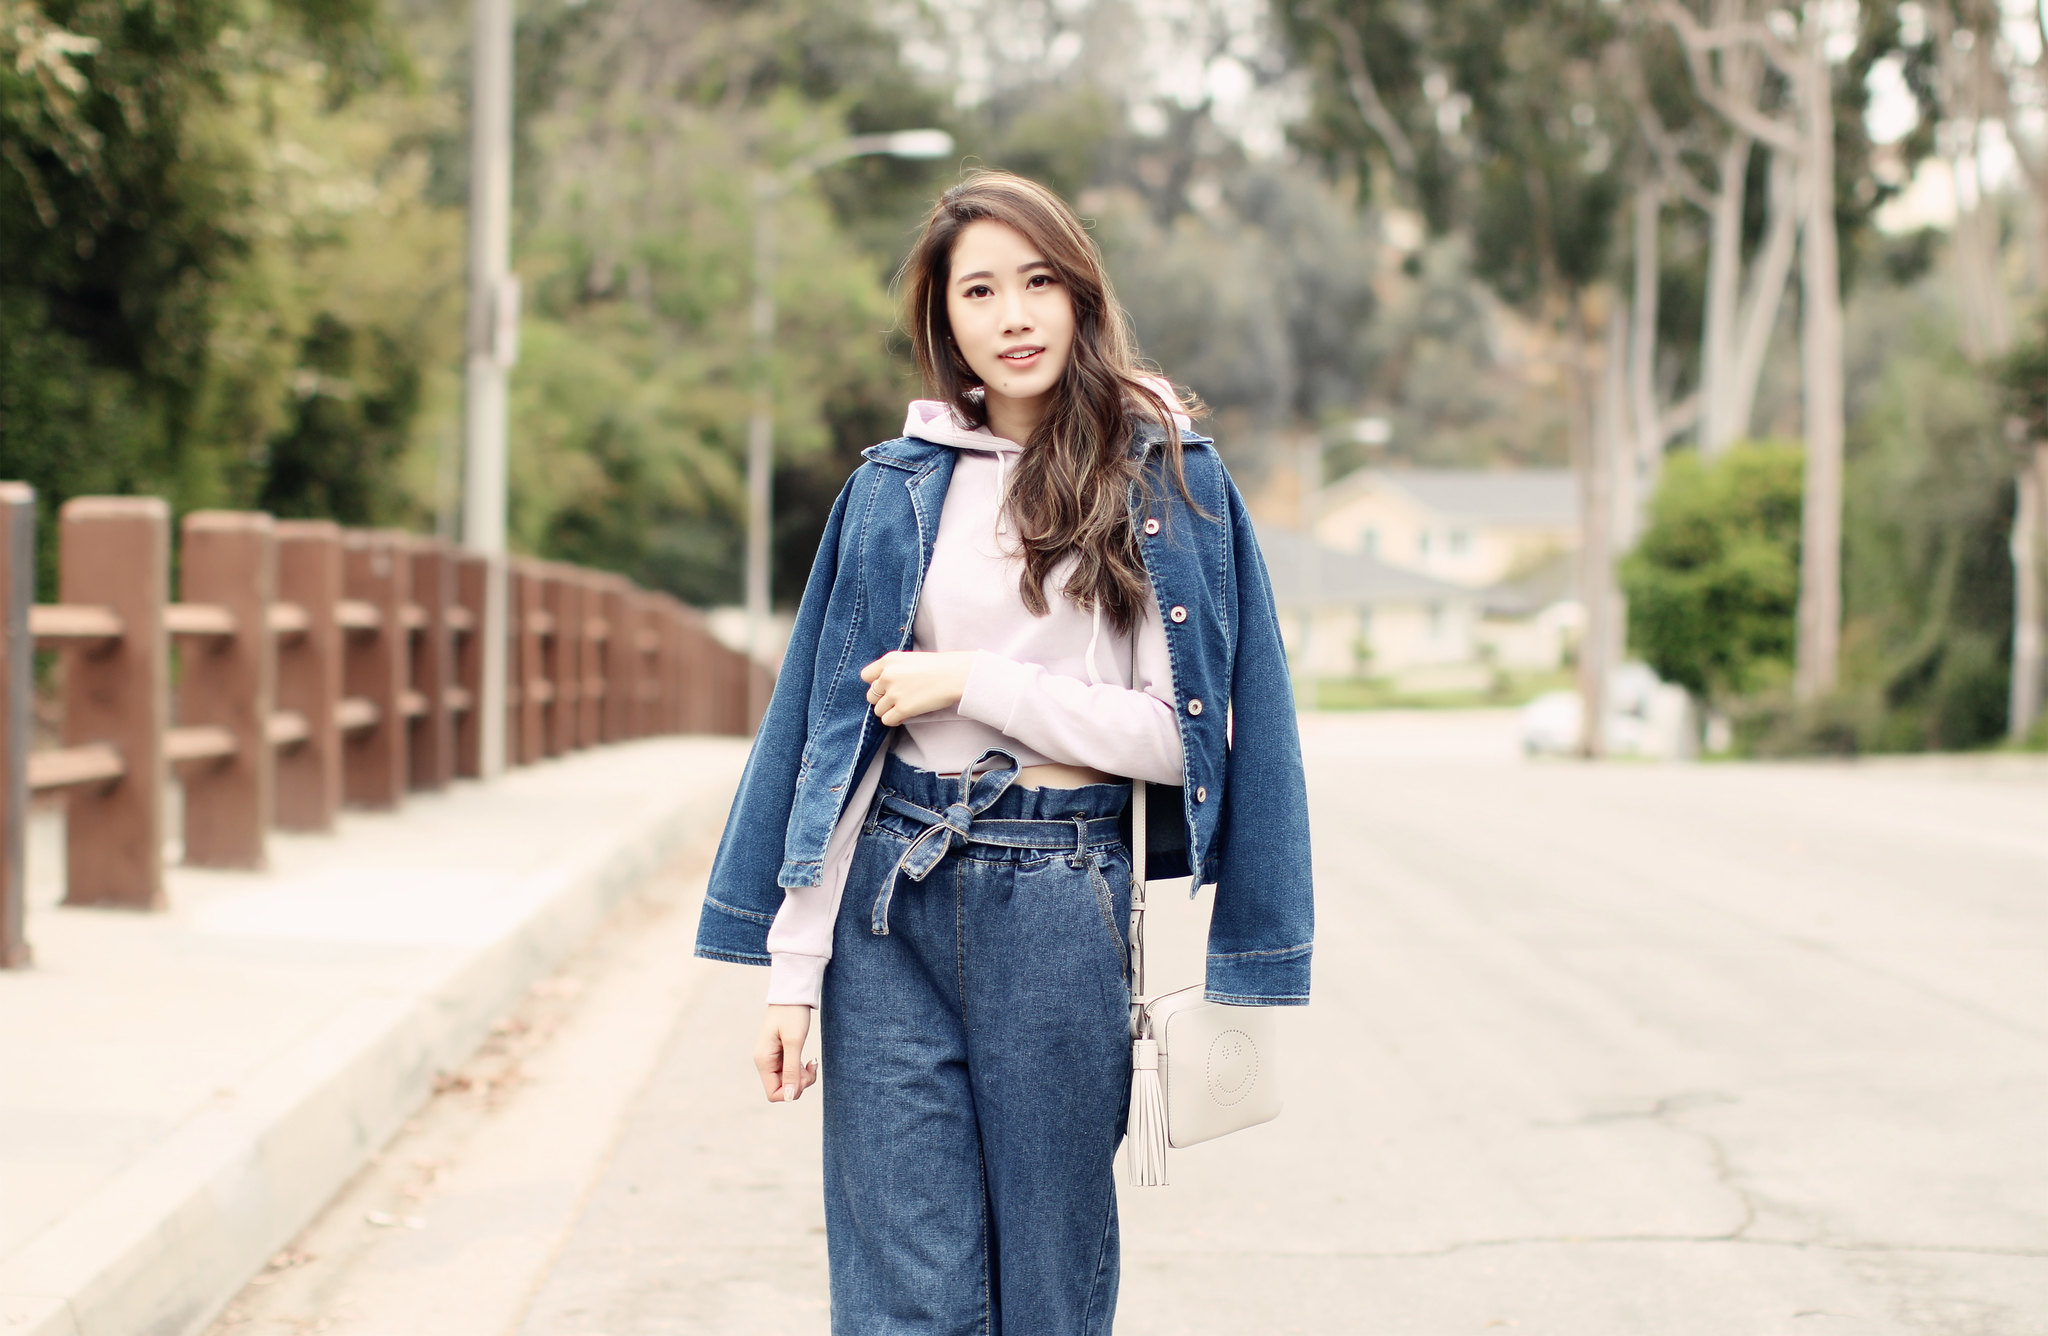 5079-ootd-fashion-style-outfitoftheday-wiwt-streetstyle-zara-f21xme-denim-thrifted-guess-koreanfashion-lookbook-elizabeeetht-clothestoyouuu